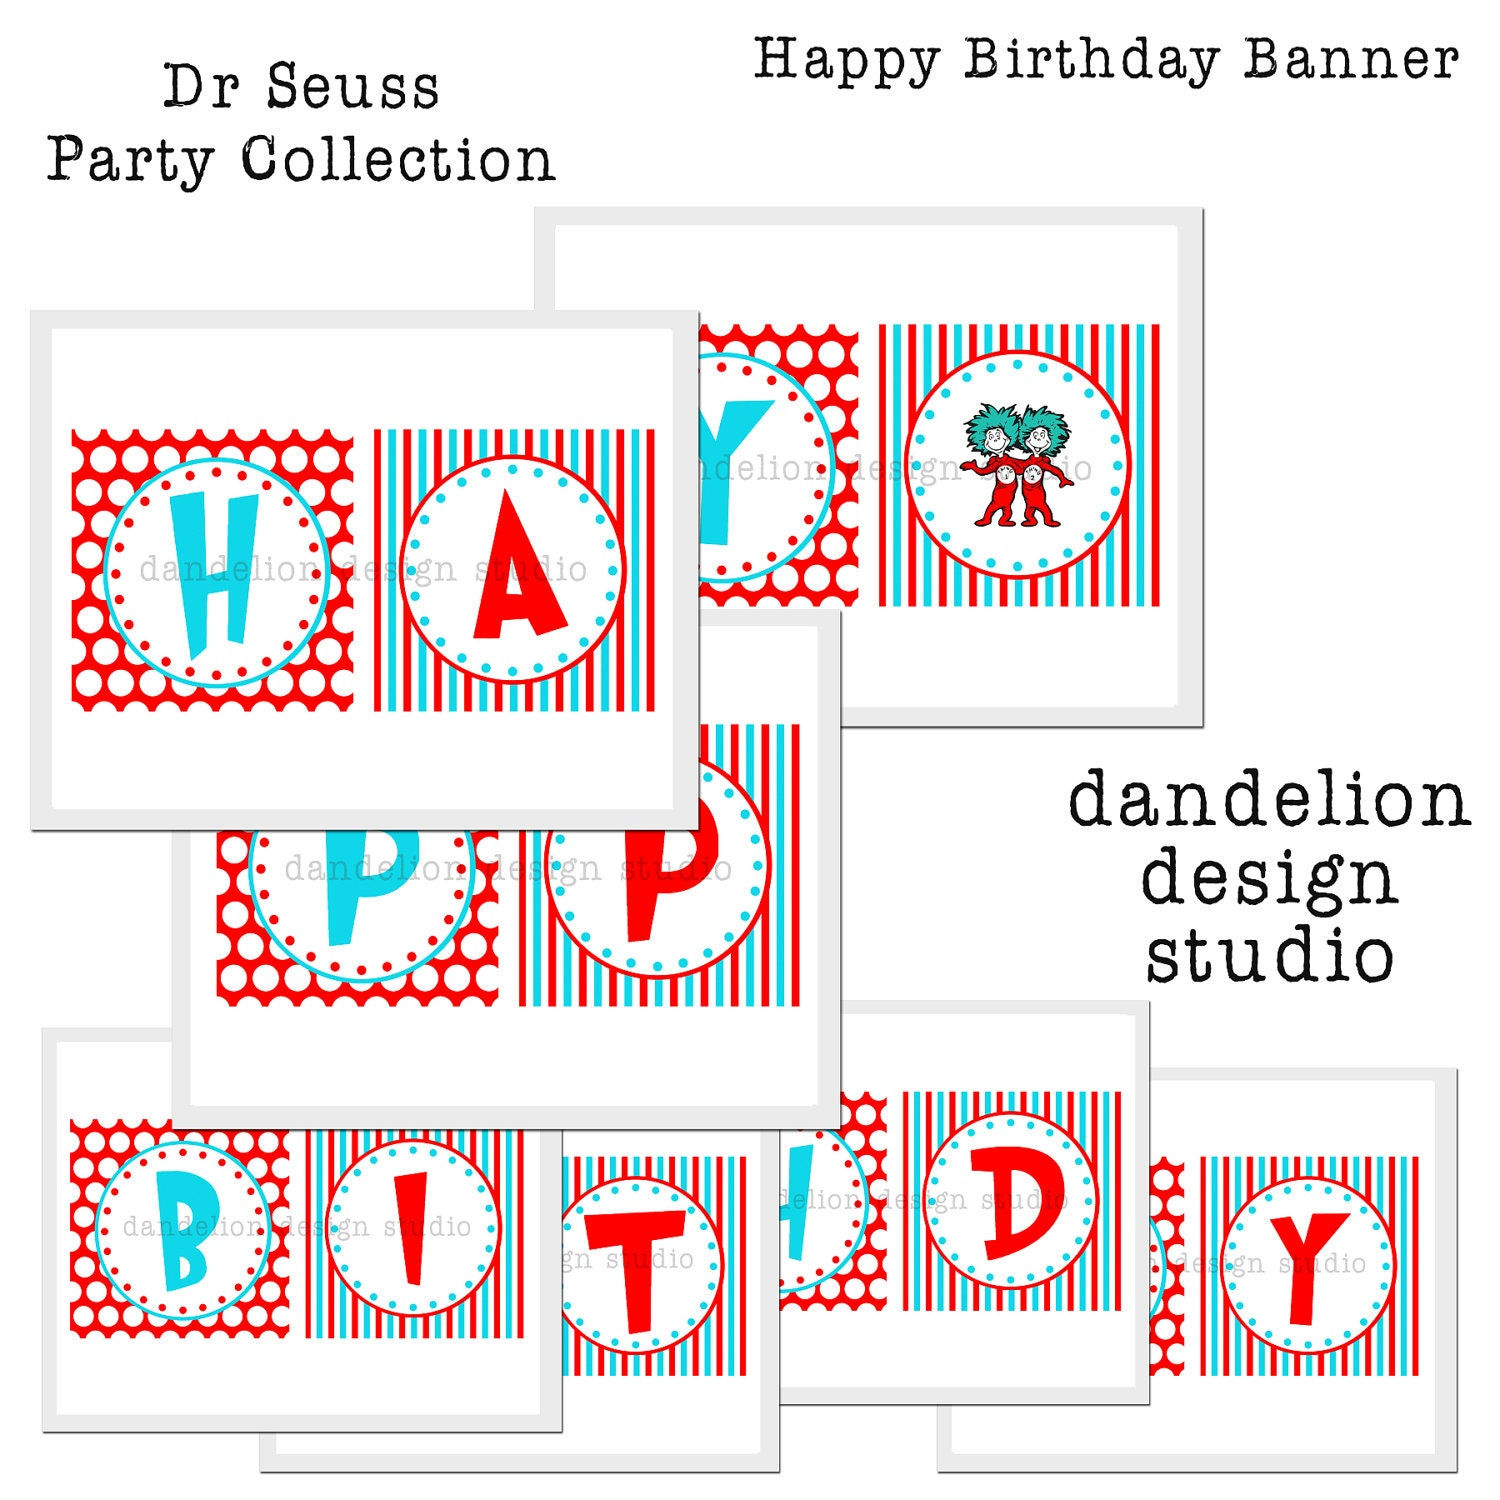 PRINTABLE Happy Birthday Banner Dr Seuss Party Collection